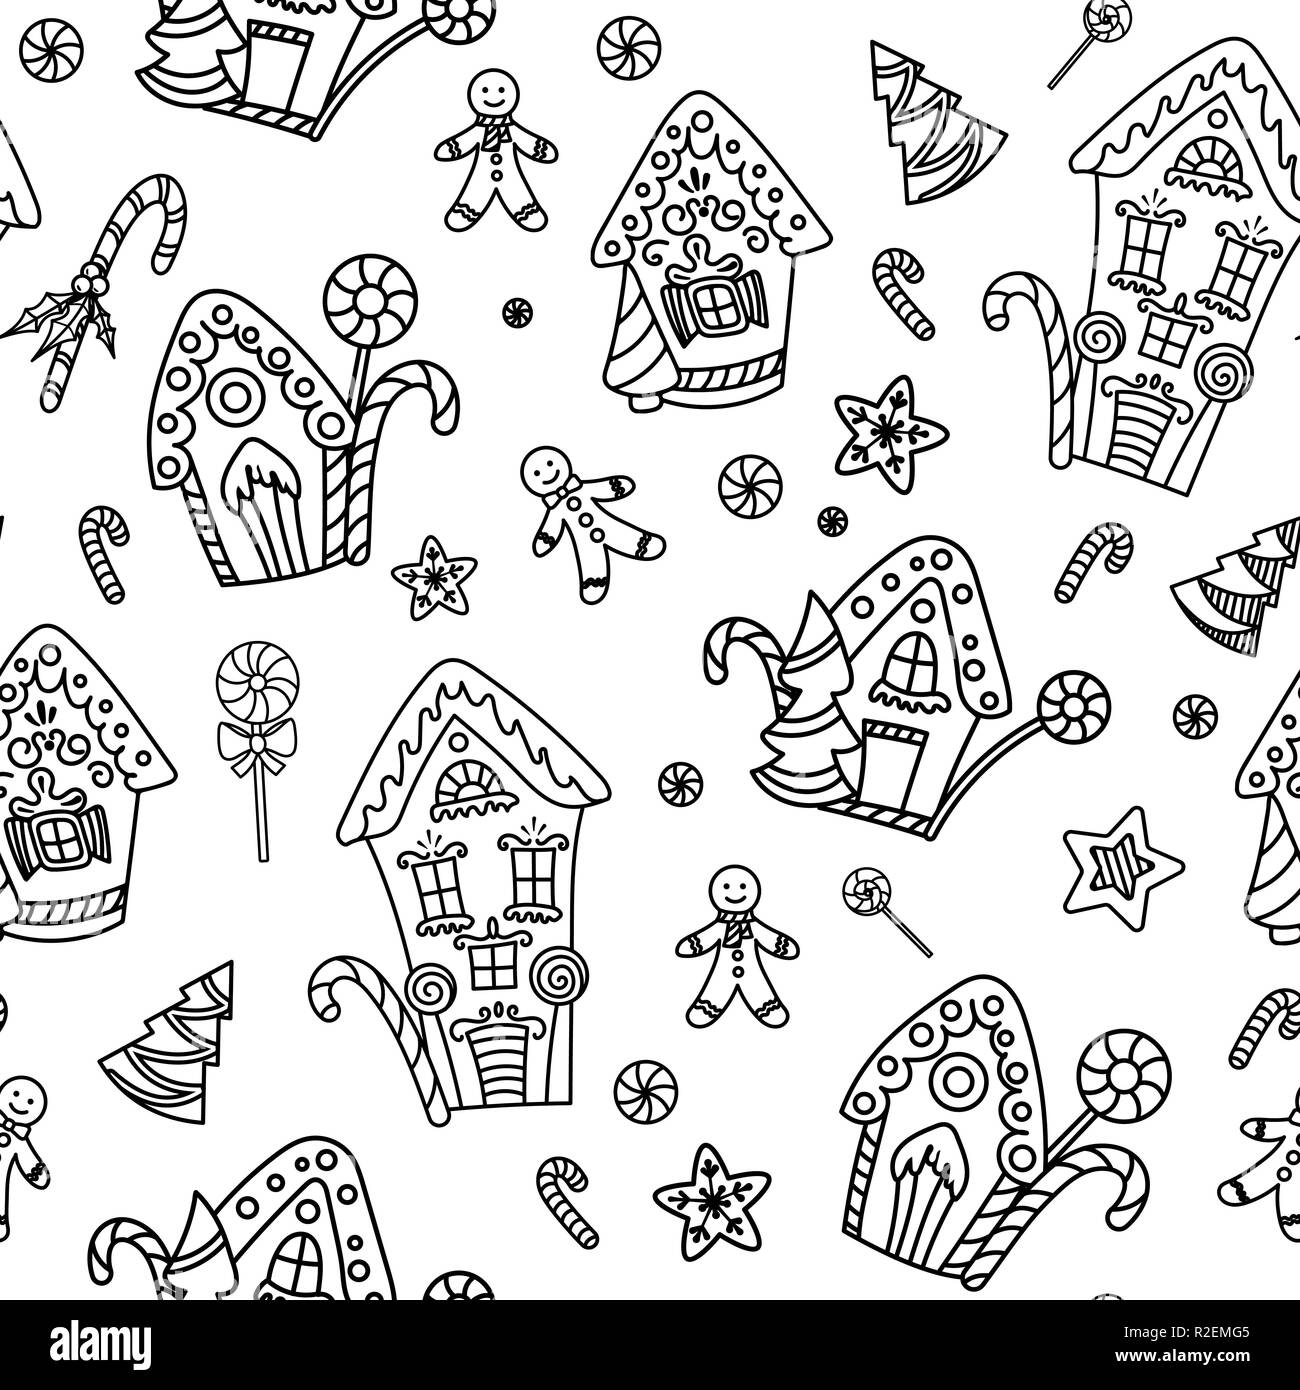 Christmas seamless pattern with gingerbread house candy canes and lollipops hand drawn doodle style black and white vector illustration